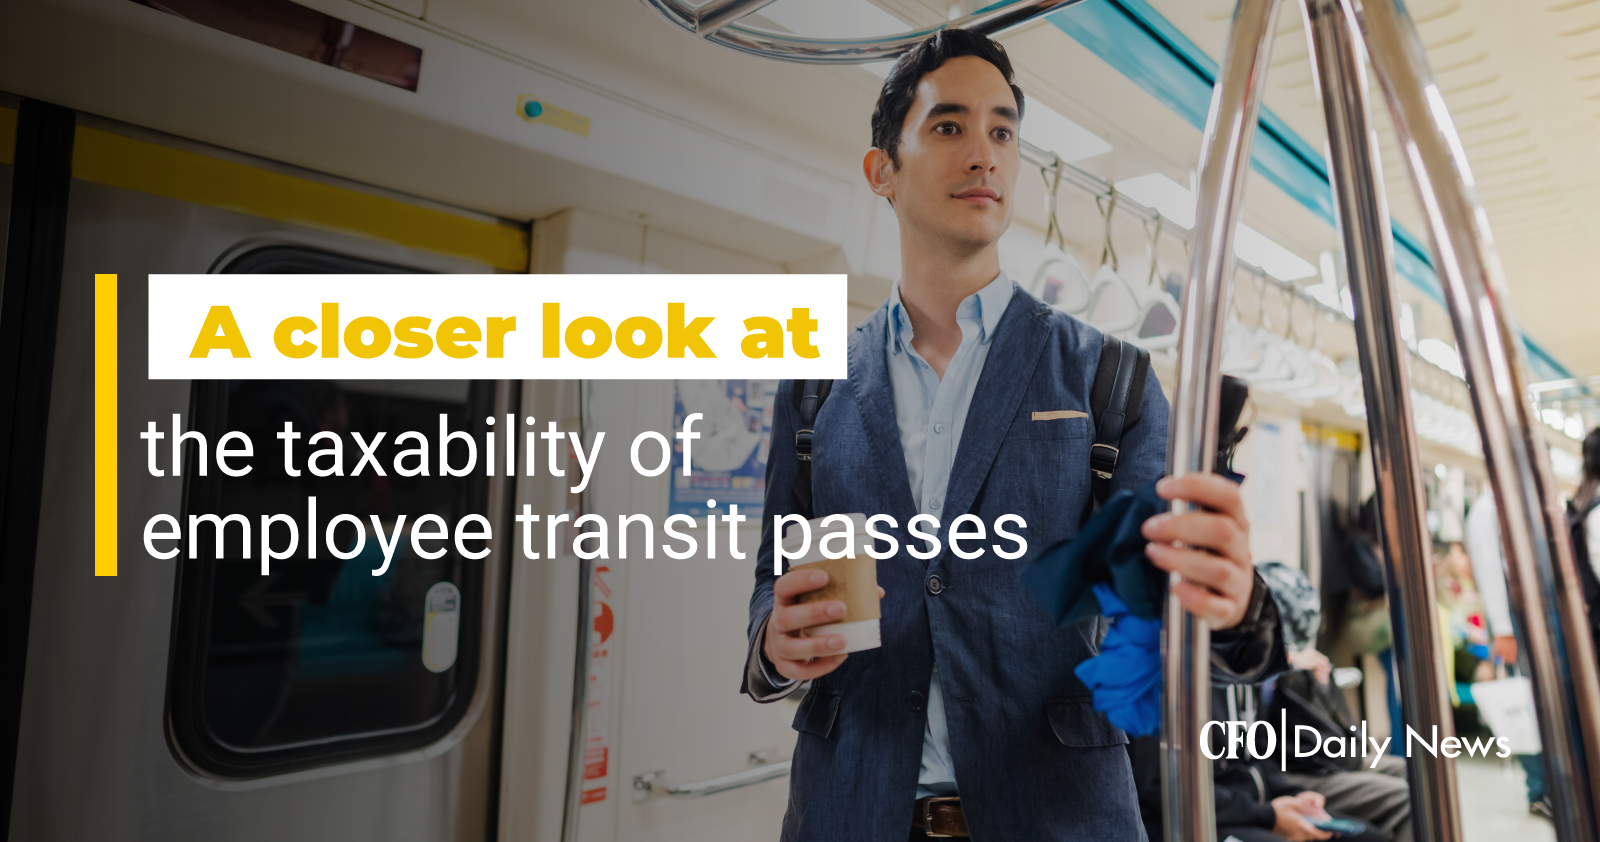 A closer look at taxability of employee transit passes